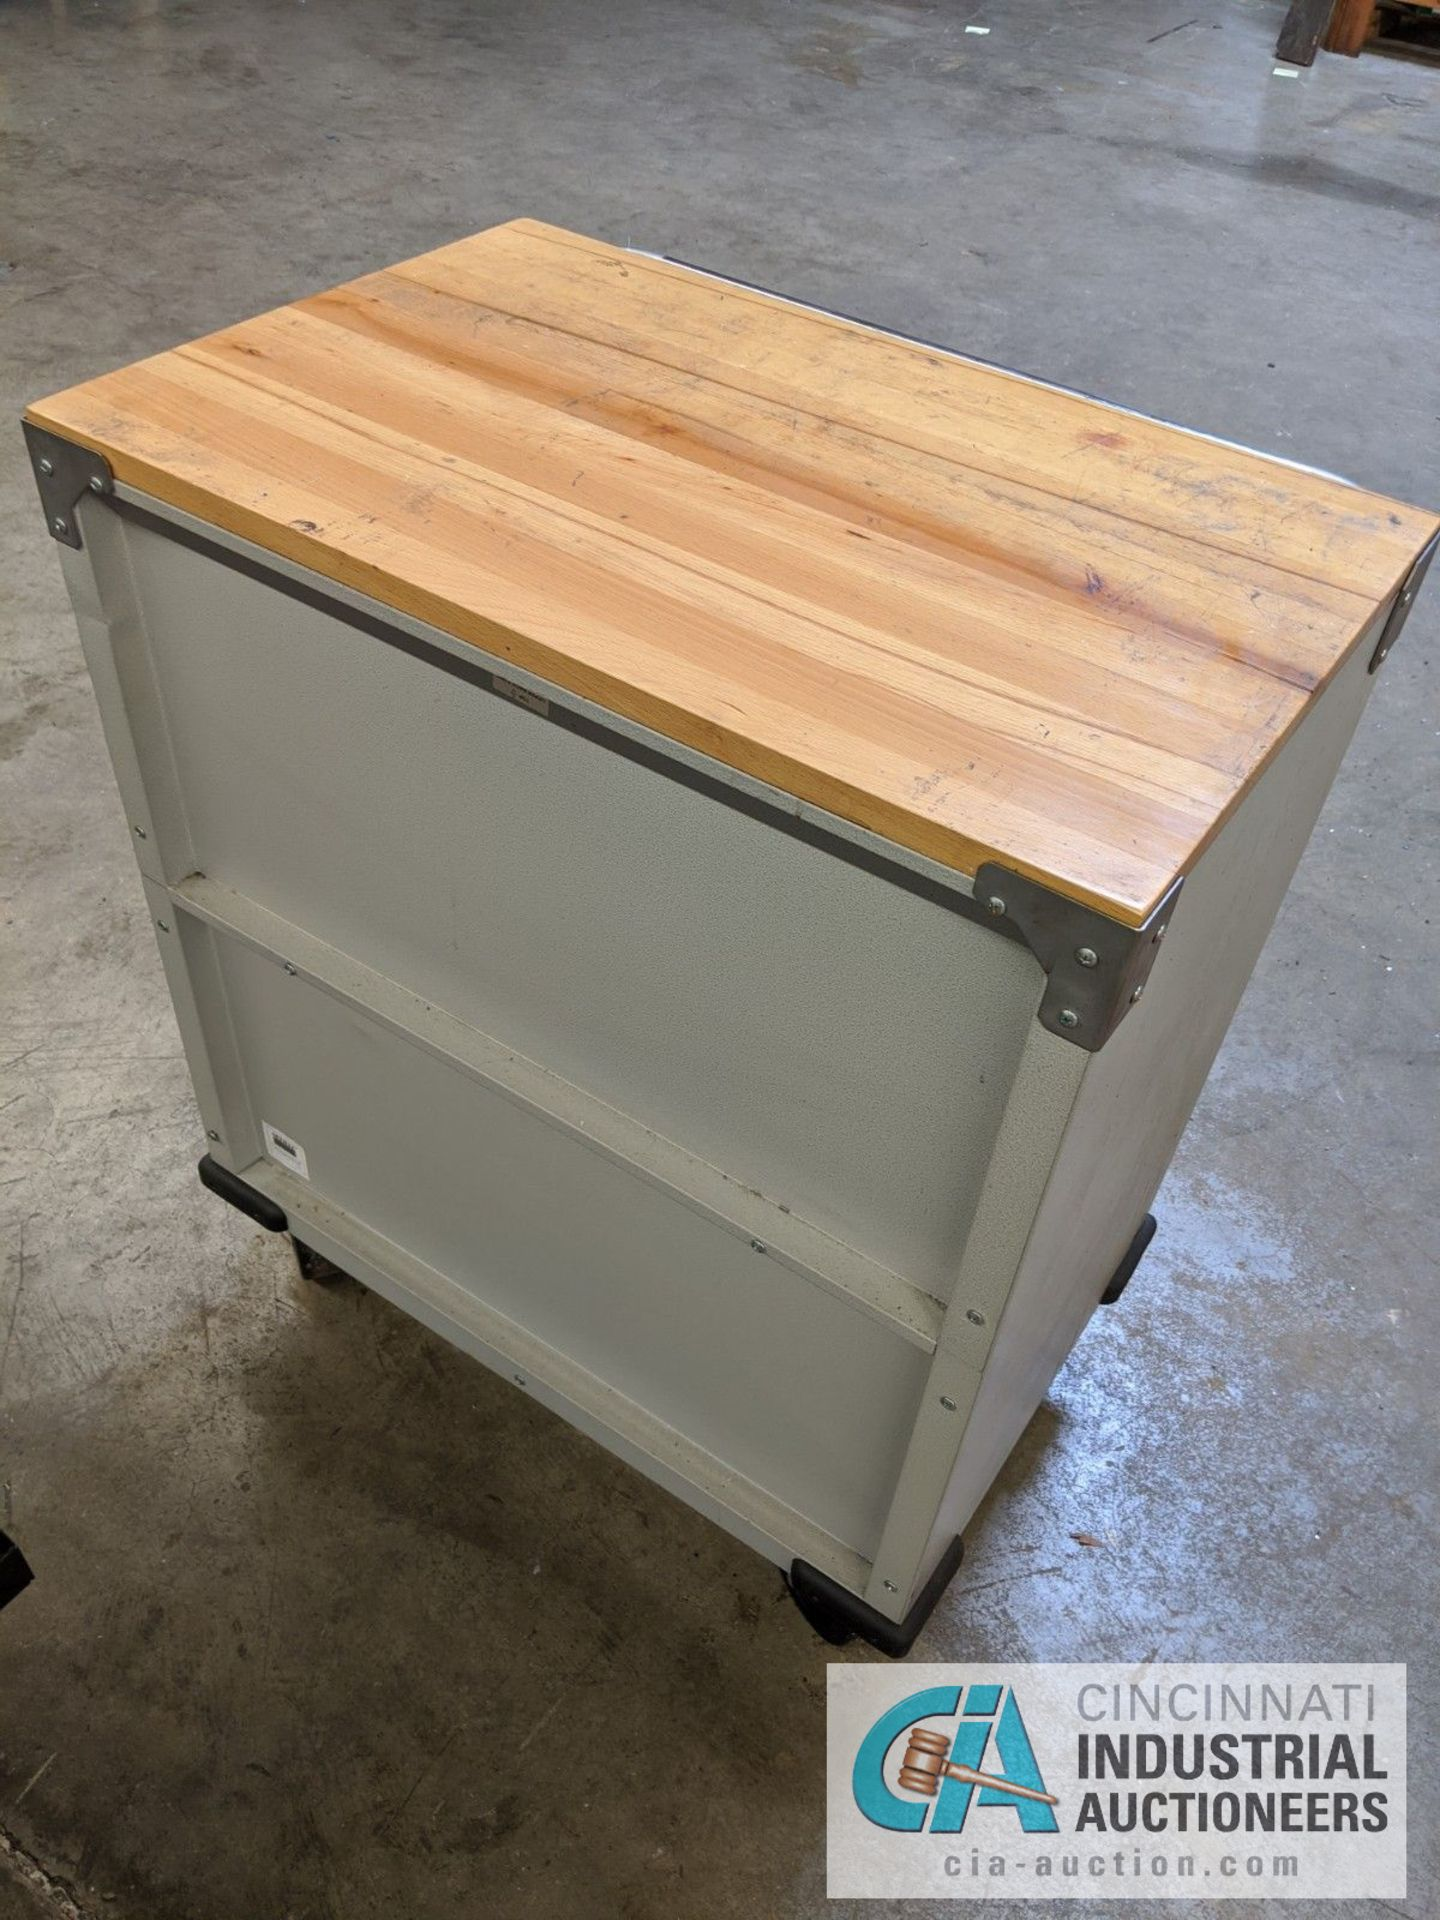 6-DRAWER PORTABLE TOOL BOX WITH CONTENTS - ASSORTED HAND TOOLS, MAPLE TOP - Image 2 of 6